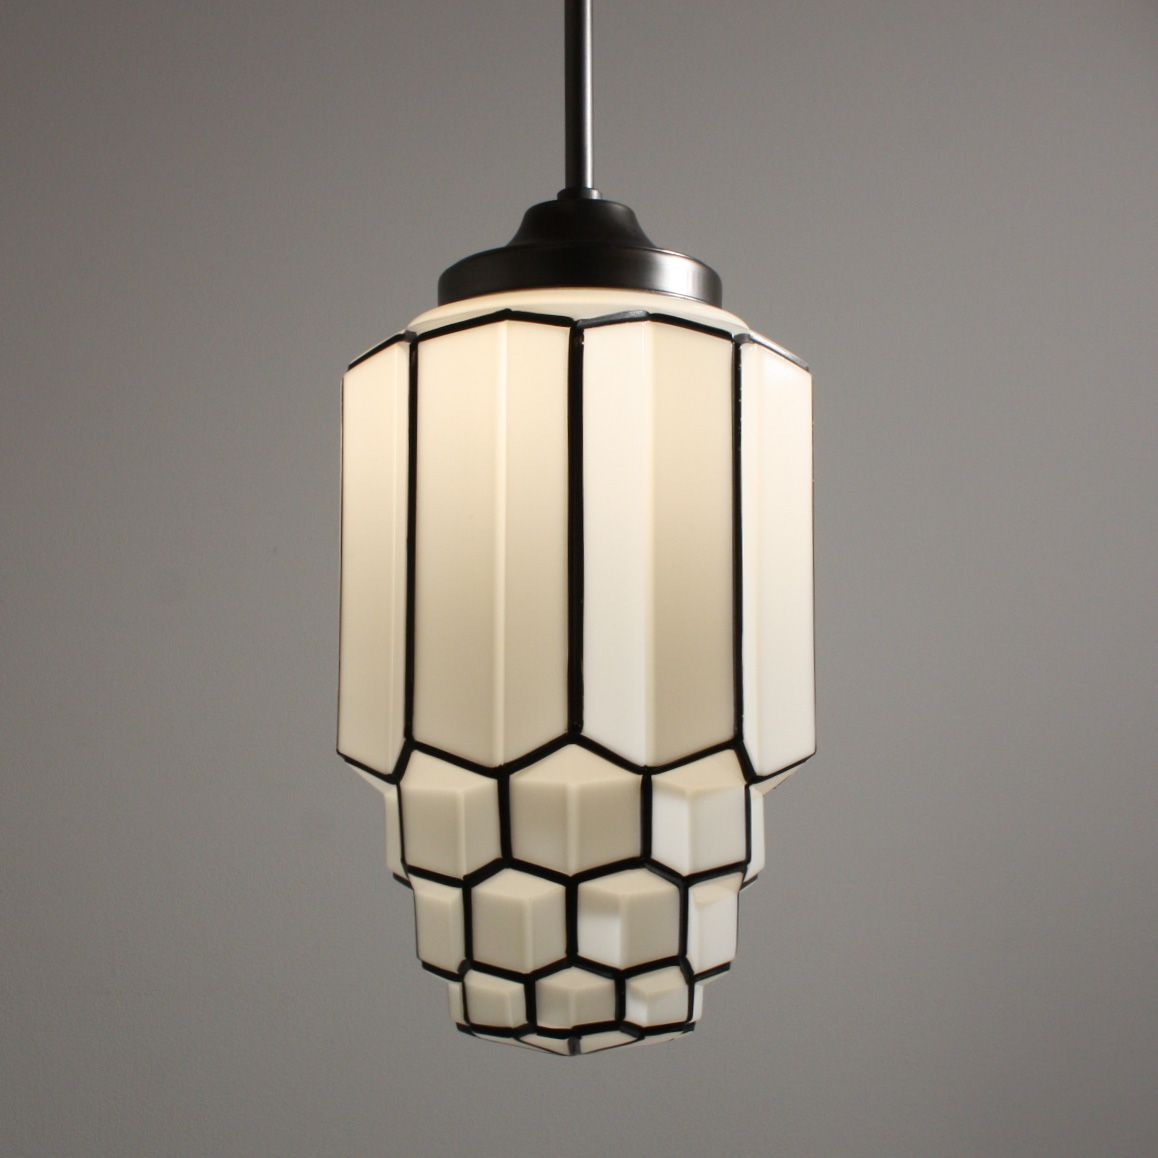 Images of vintage art deco vintage art deco pendant - Art deco bathroom lighting fixtures ...